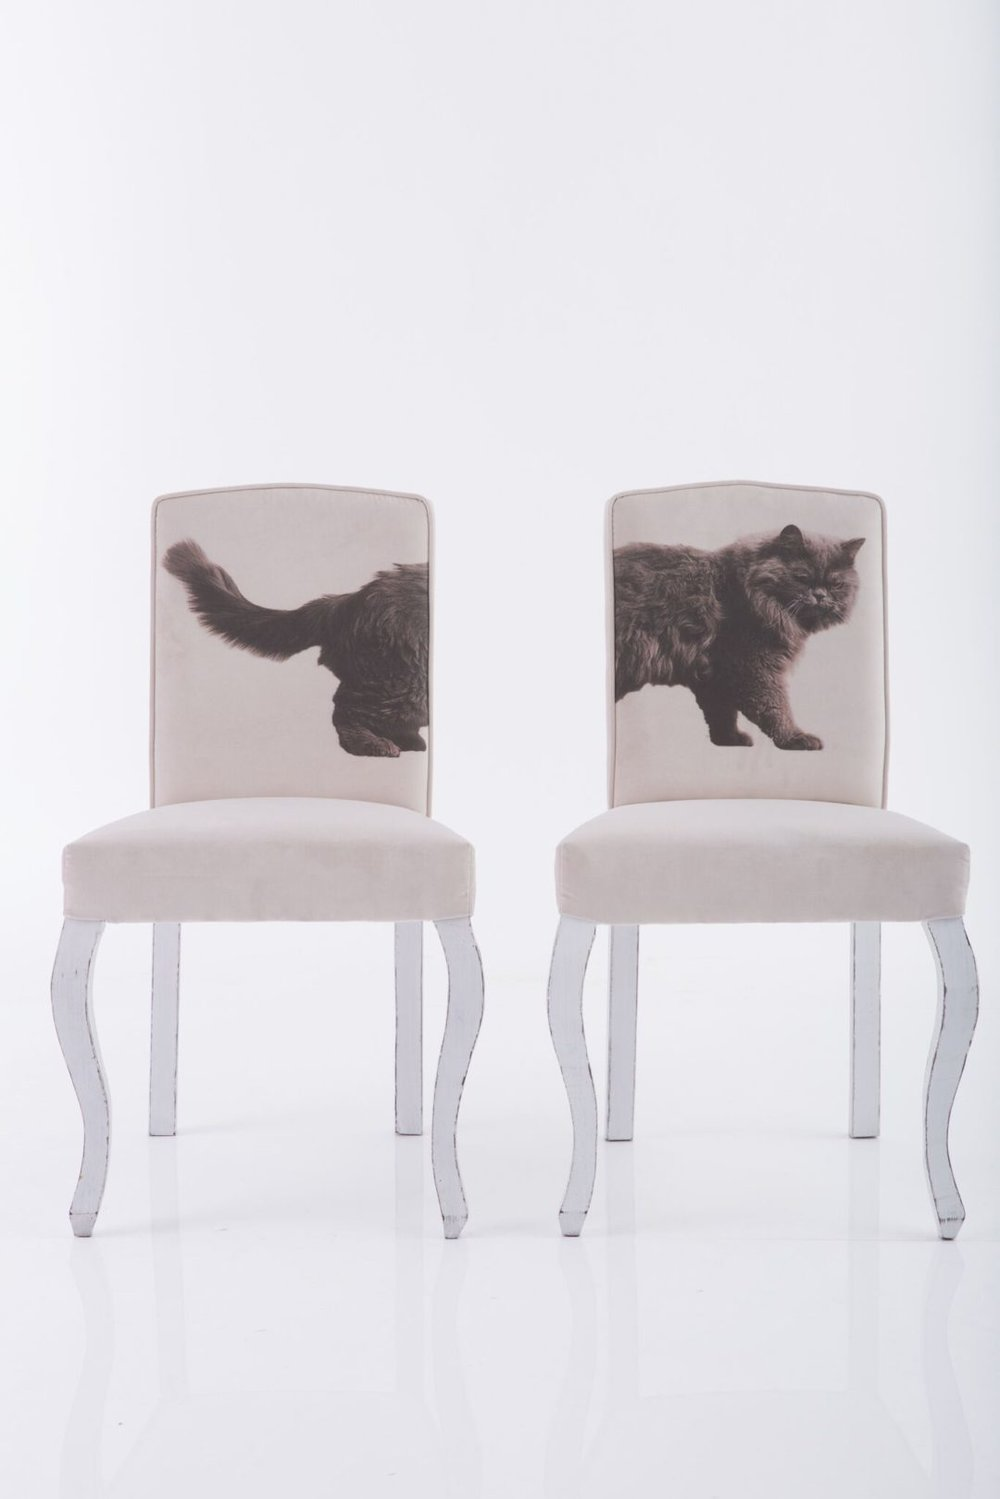 The cat diptych chairs I fell so madly in love with!